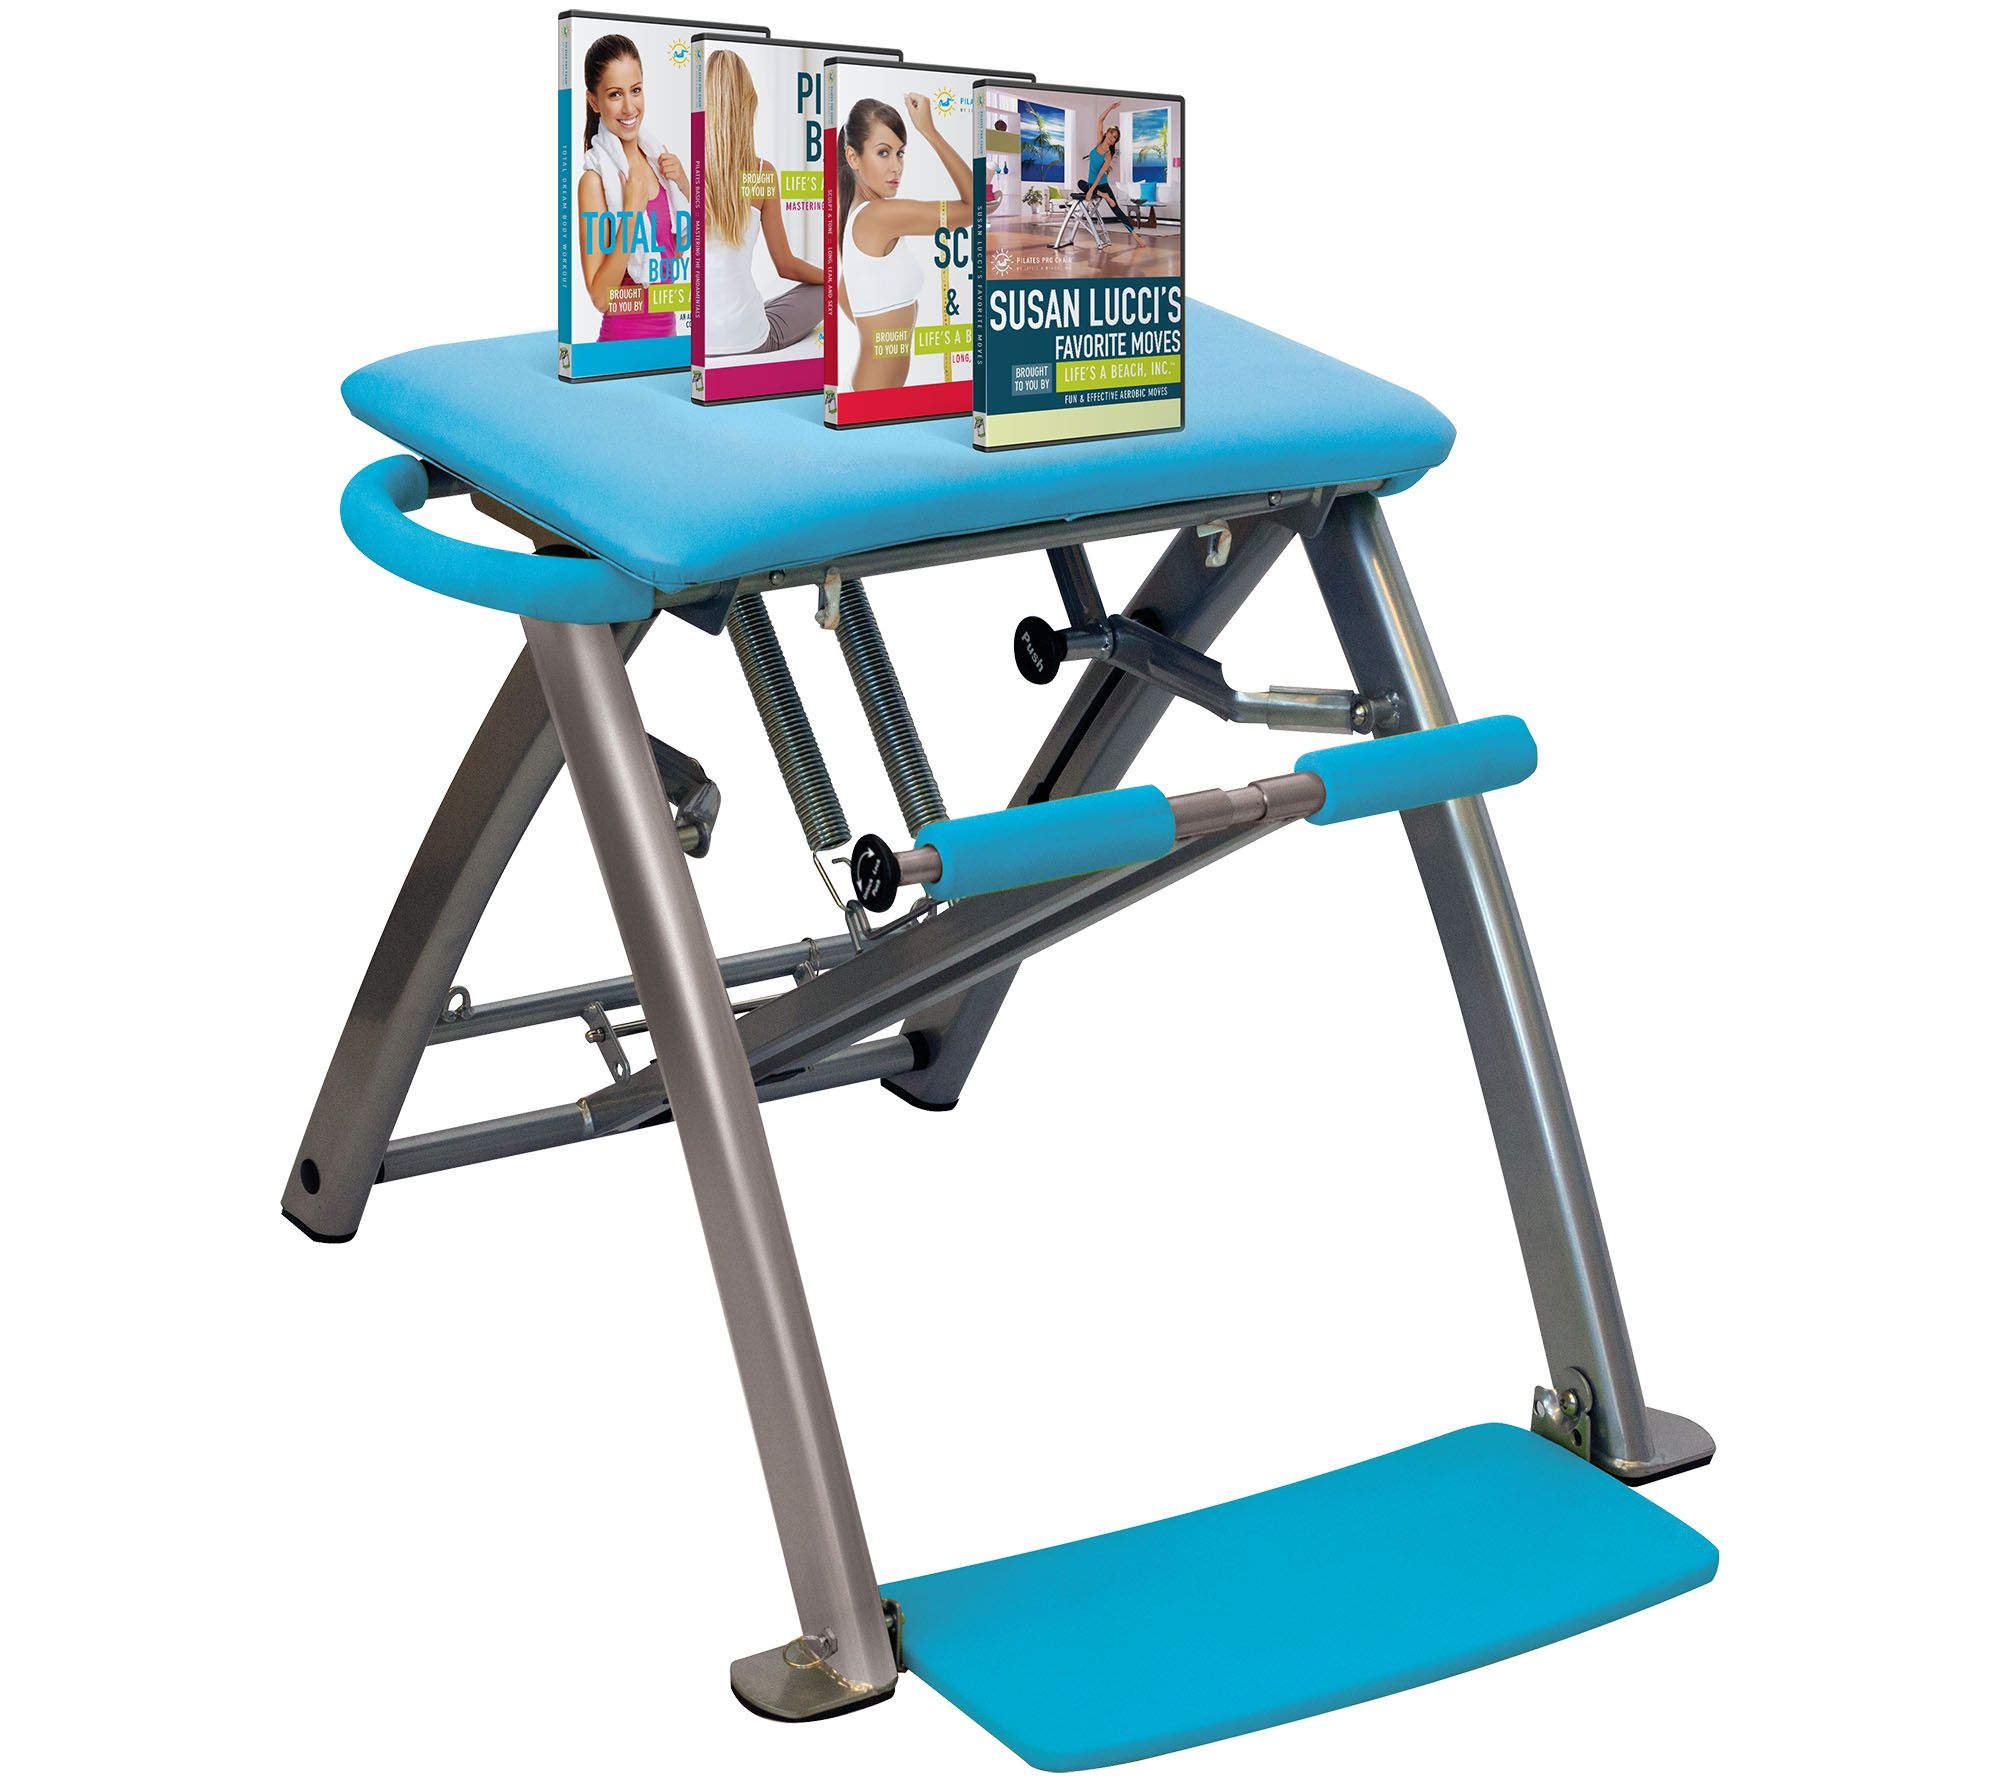 Pilates Pro Chair With 4 Dvds By Life S A Beach Smart: Pilates PRO Chair With 4 DVD's By Life's Life's A Beach